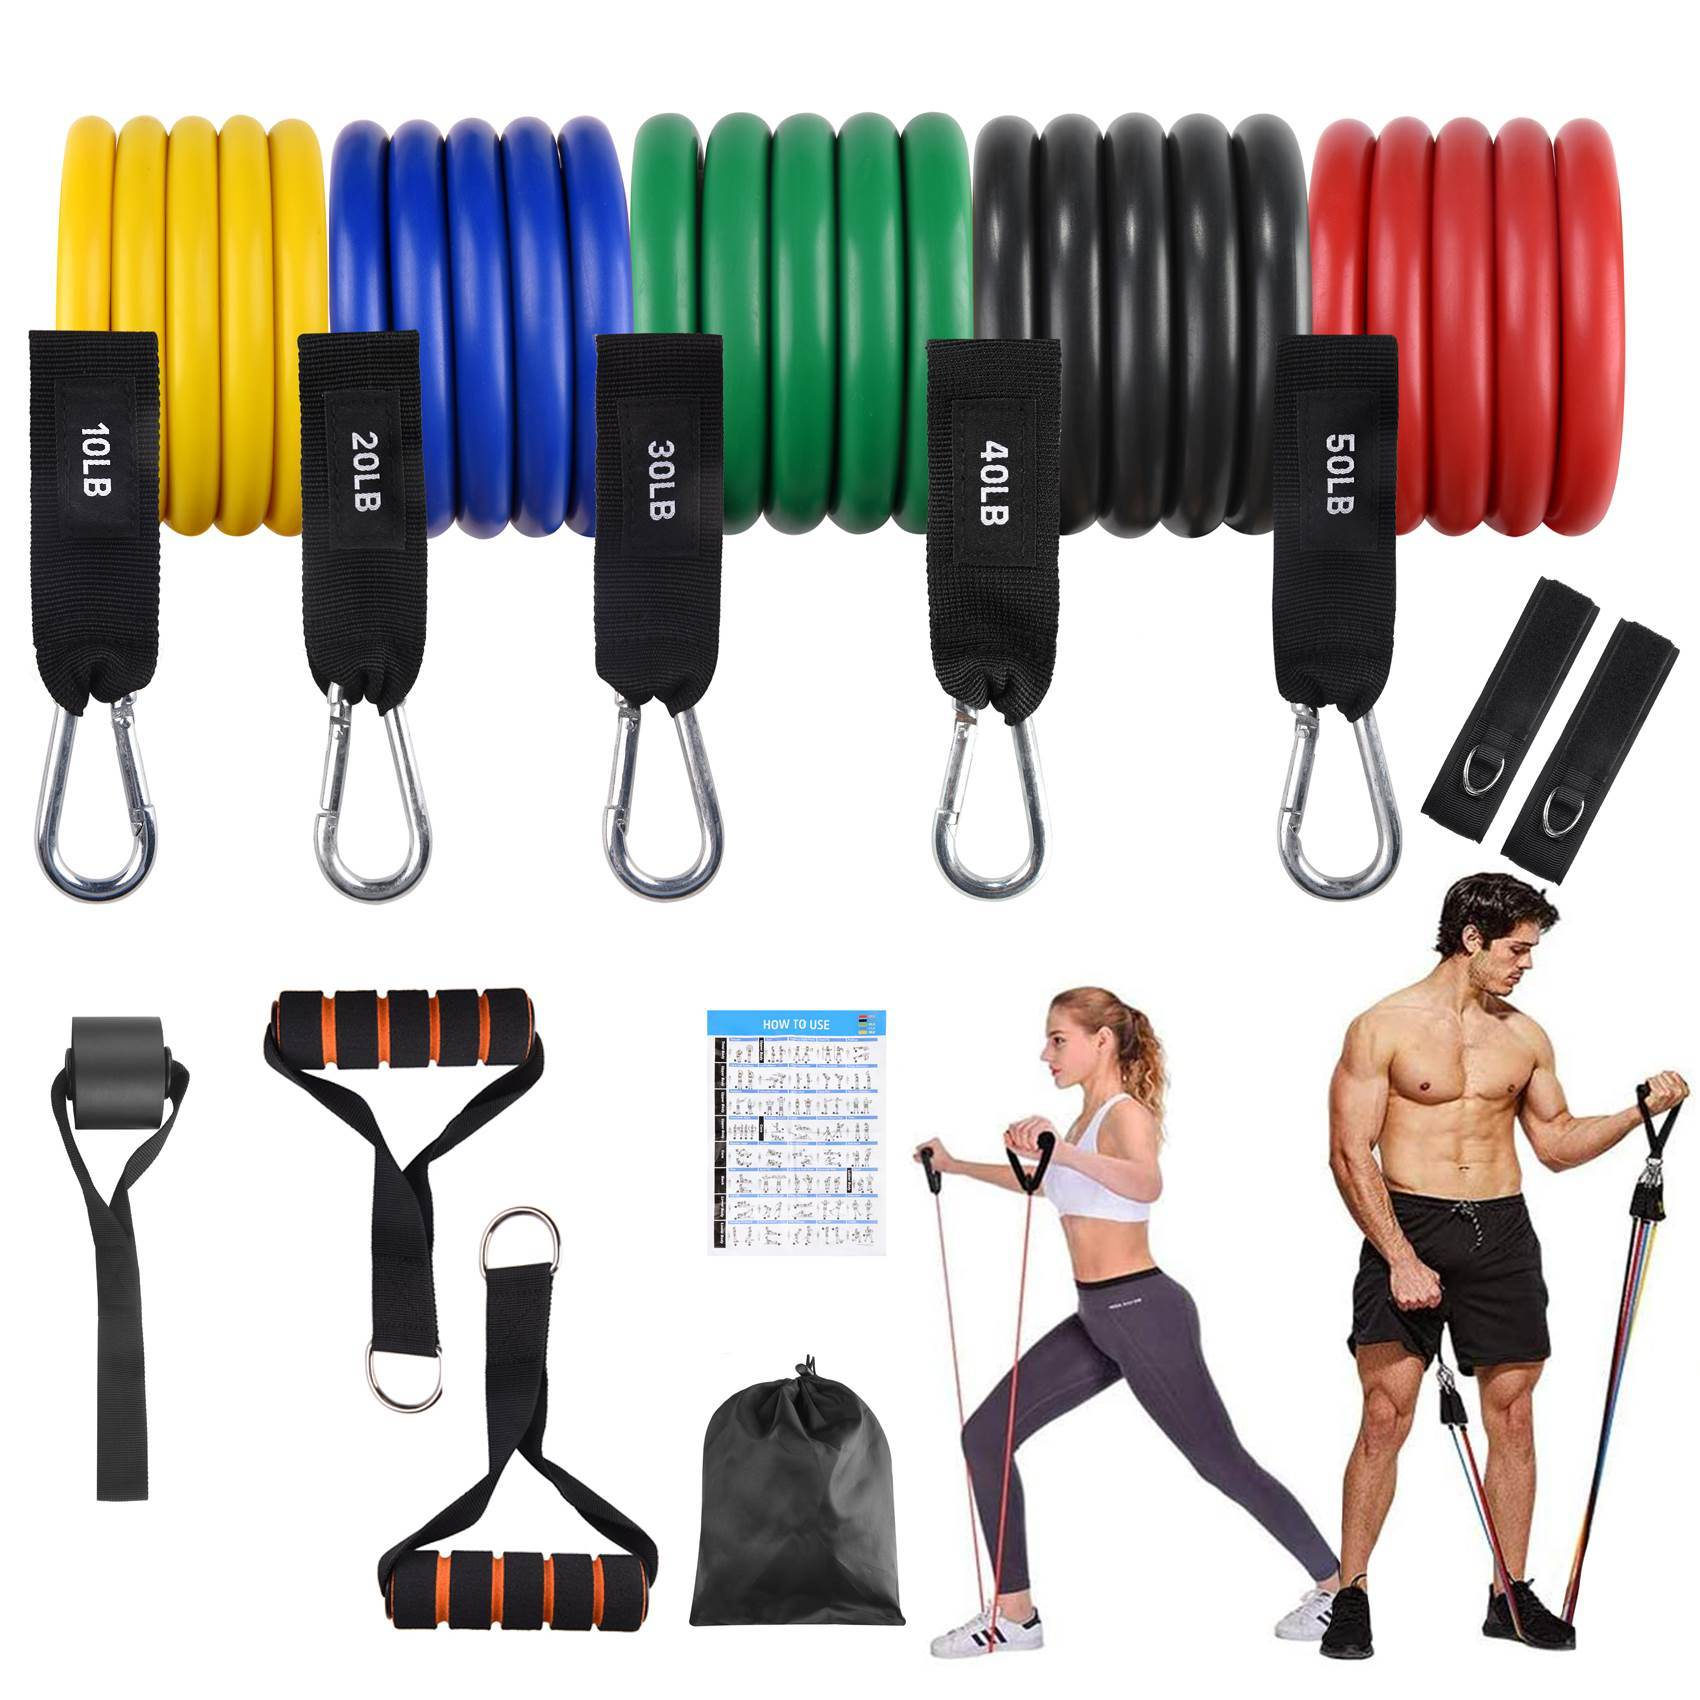 FITFIT Resistance Bands Set, 5 Stackable Tube Exercise Bands with 2 Handles, 1 Door Anchor, 2 Ankle Straps, 1 Carrying Bag for Your Whole Body Resistance Workouts Training